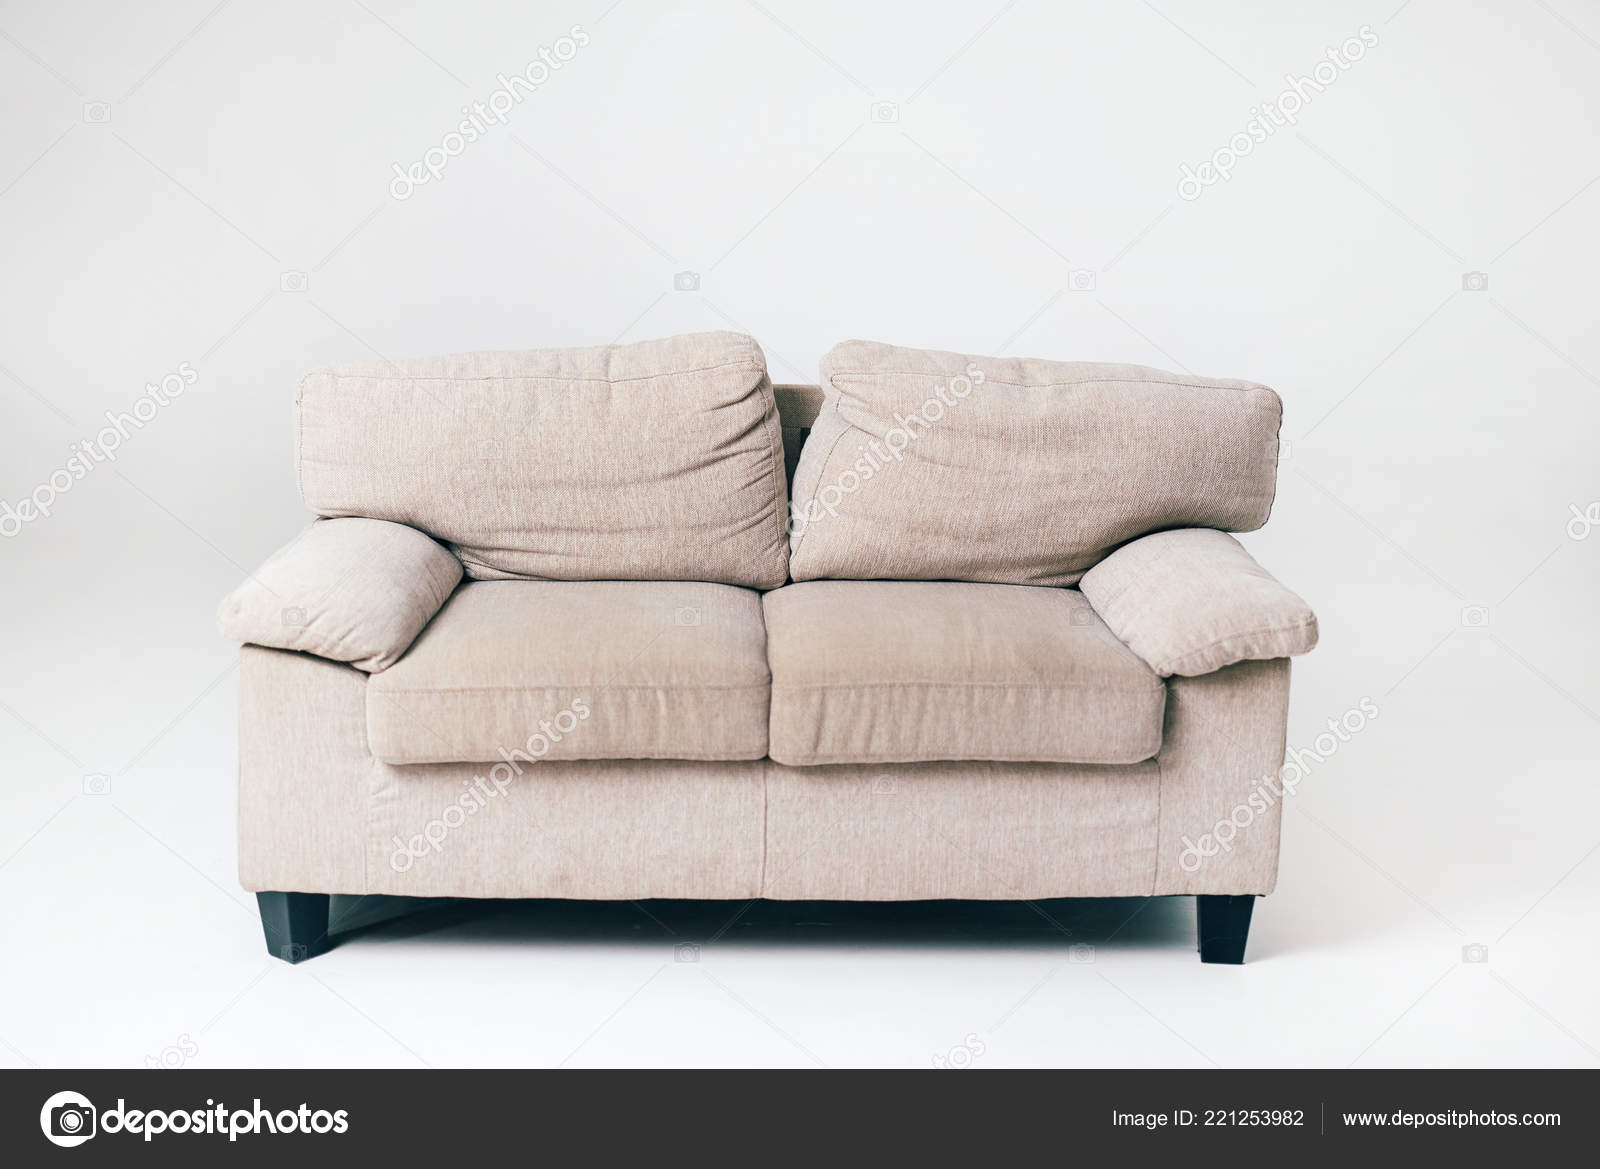 Strange Gray Soft Sofa Pillows Stands Middle Room White Background Caraccident5 Cool Chair Designs And Ideas Caraccident5Info